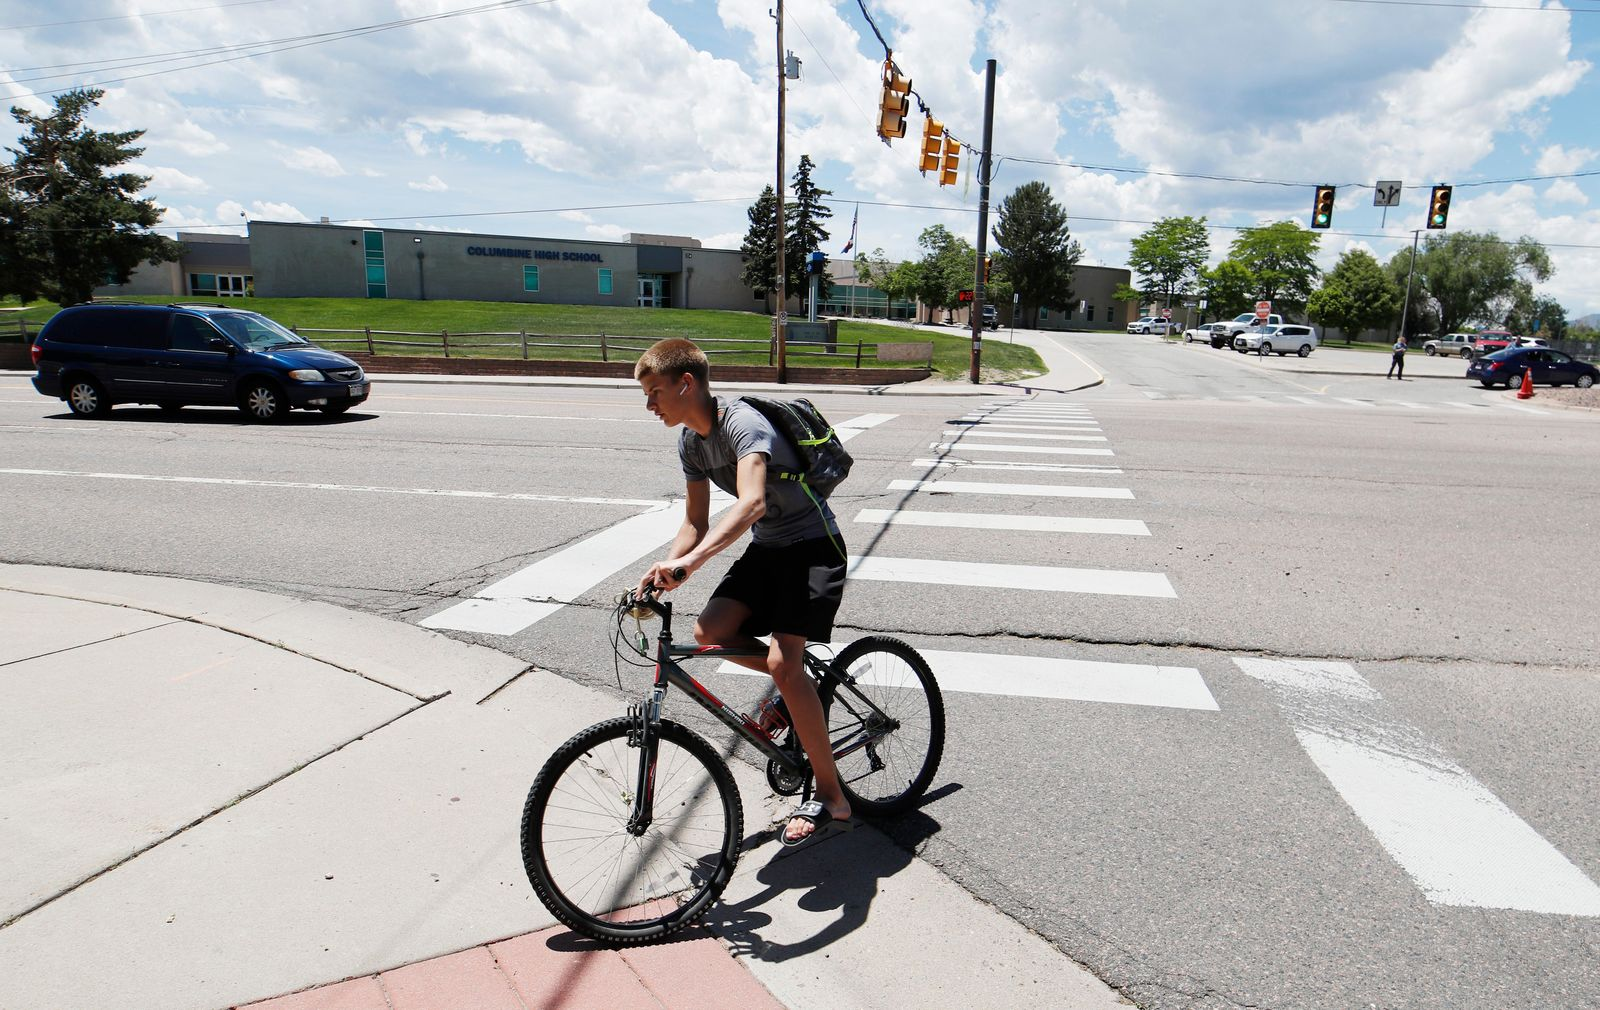 A bicyclist rides away from Columbine High School, Thursday, June 13, 2019, in Littleton, Colo. The school district is considering the demolition of Columbine, the scene of a mass assault more than 20 years ago, and rebuilding the current school. (AP Photo/David Zalubowski)